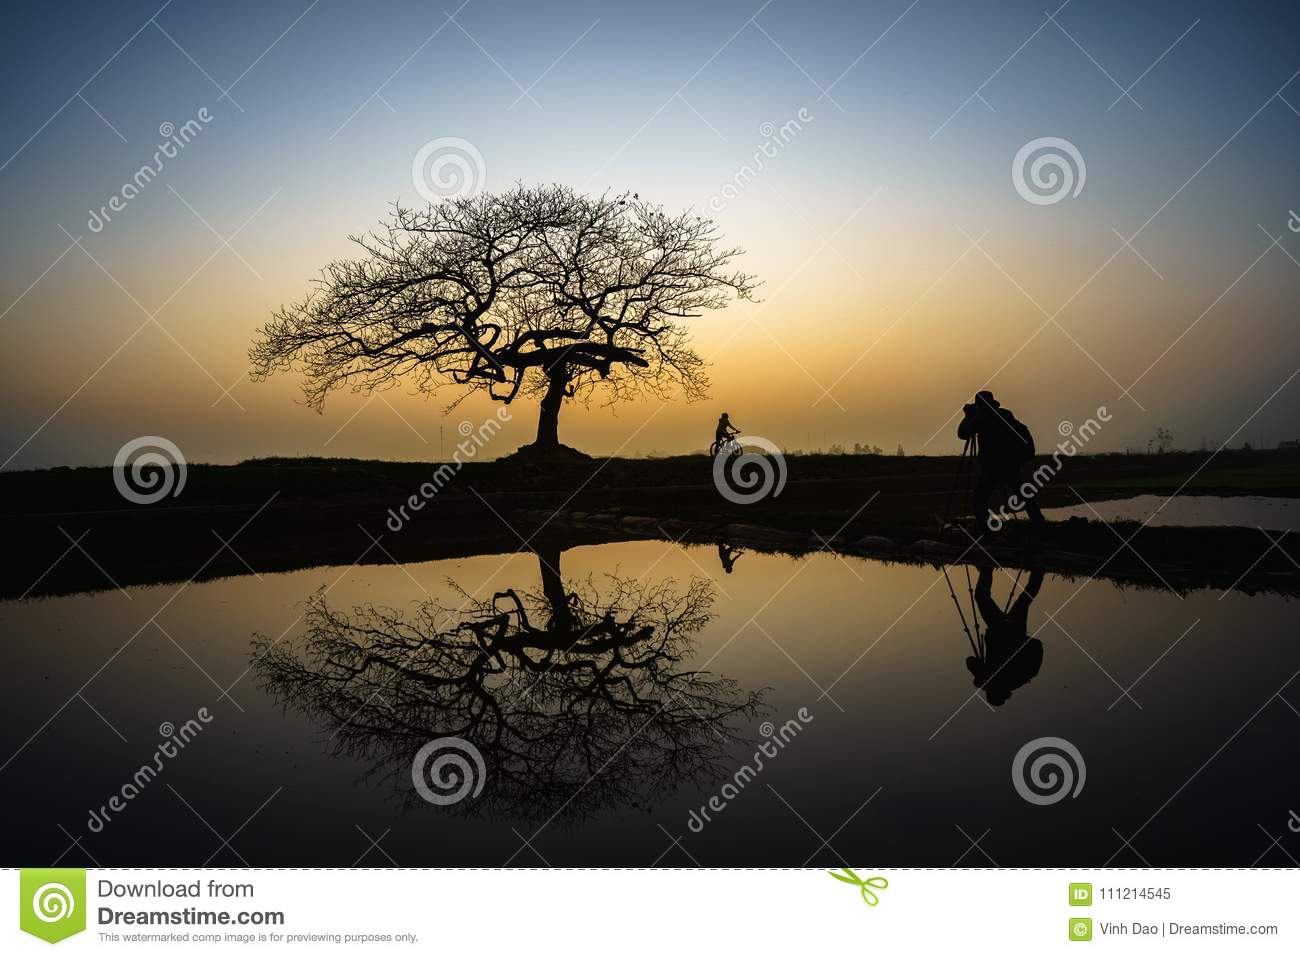 Beautiful landscape with tree silhouette and reflection at sunset with alone girl and bike under the